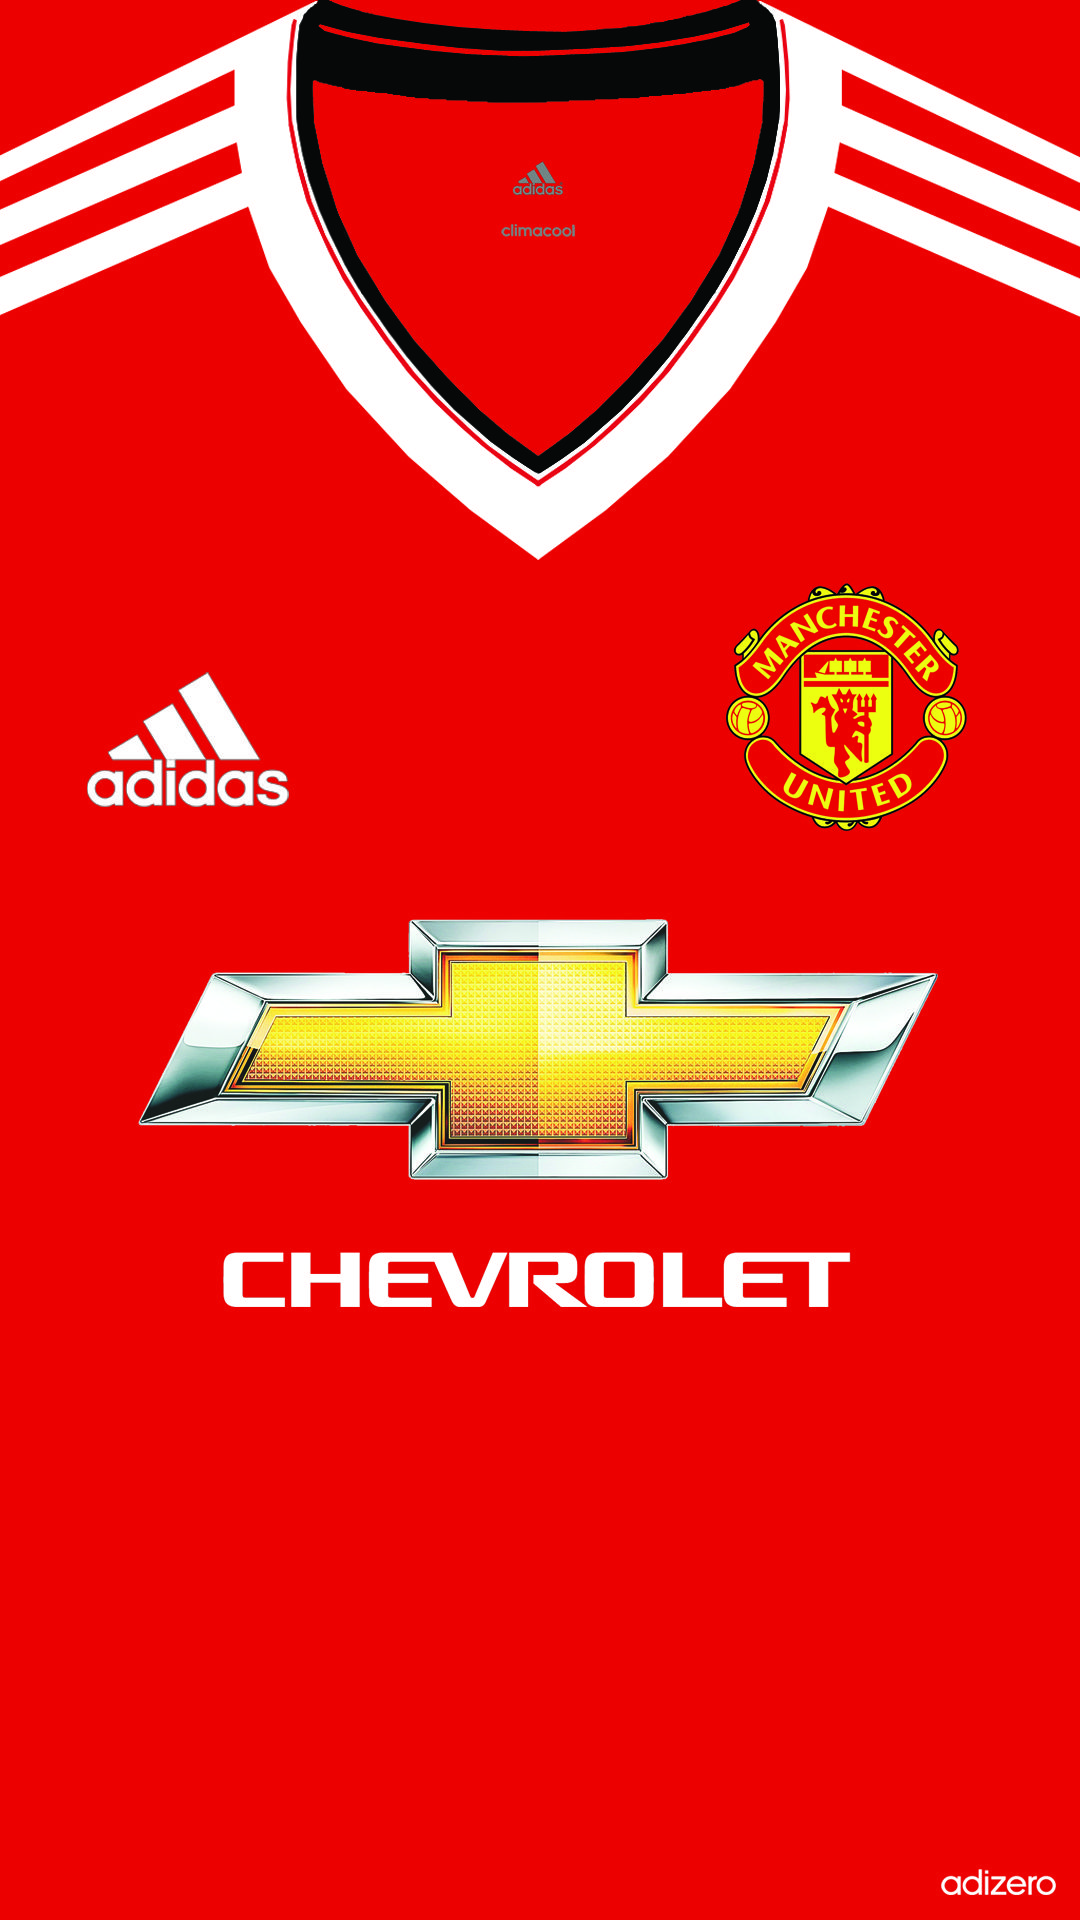 Most Good Looking Manchester United Wallpapers Hd Wallpaper Manchester United Home kit 2015/16 iphone 5 5s 6 wallpaper